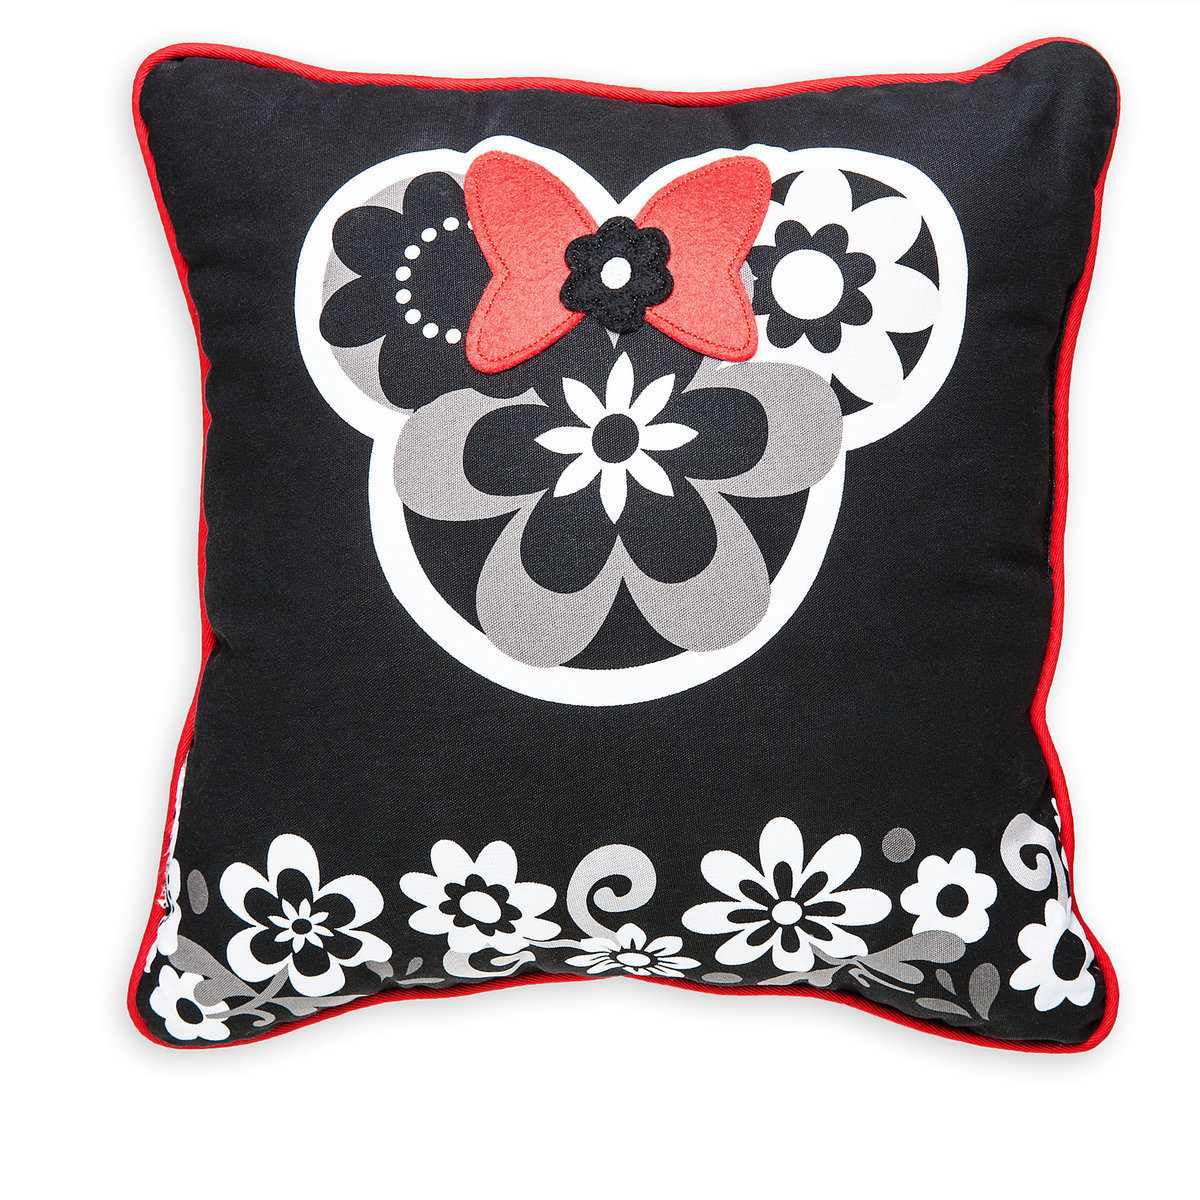 Minnie Mouse Floral Pillow